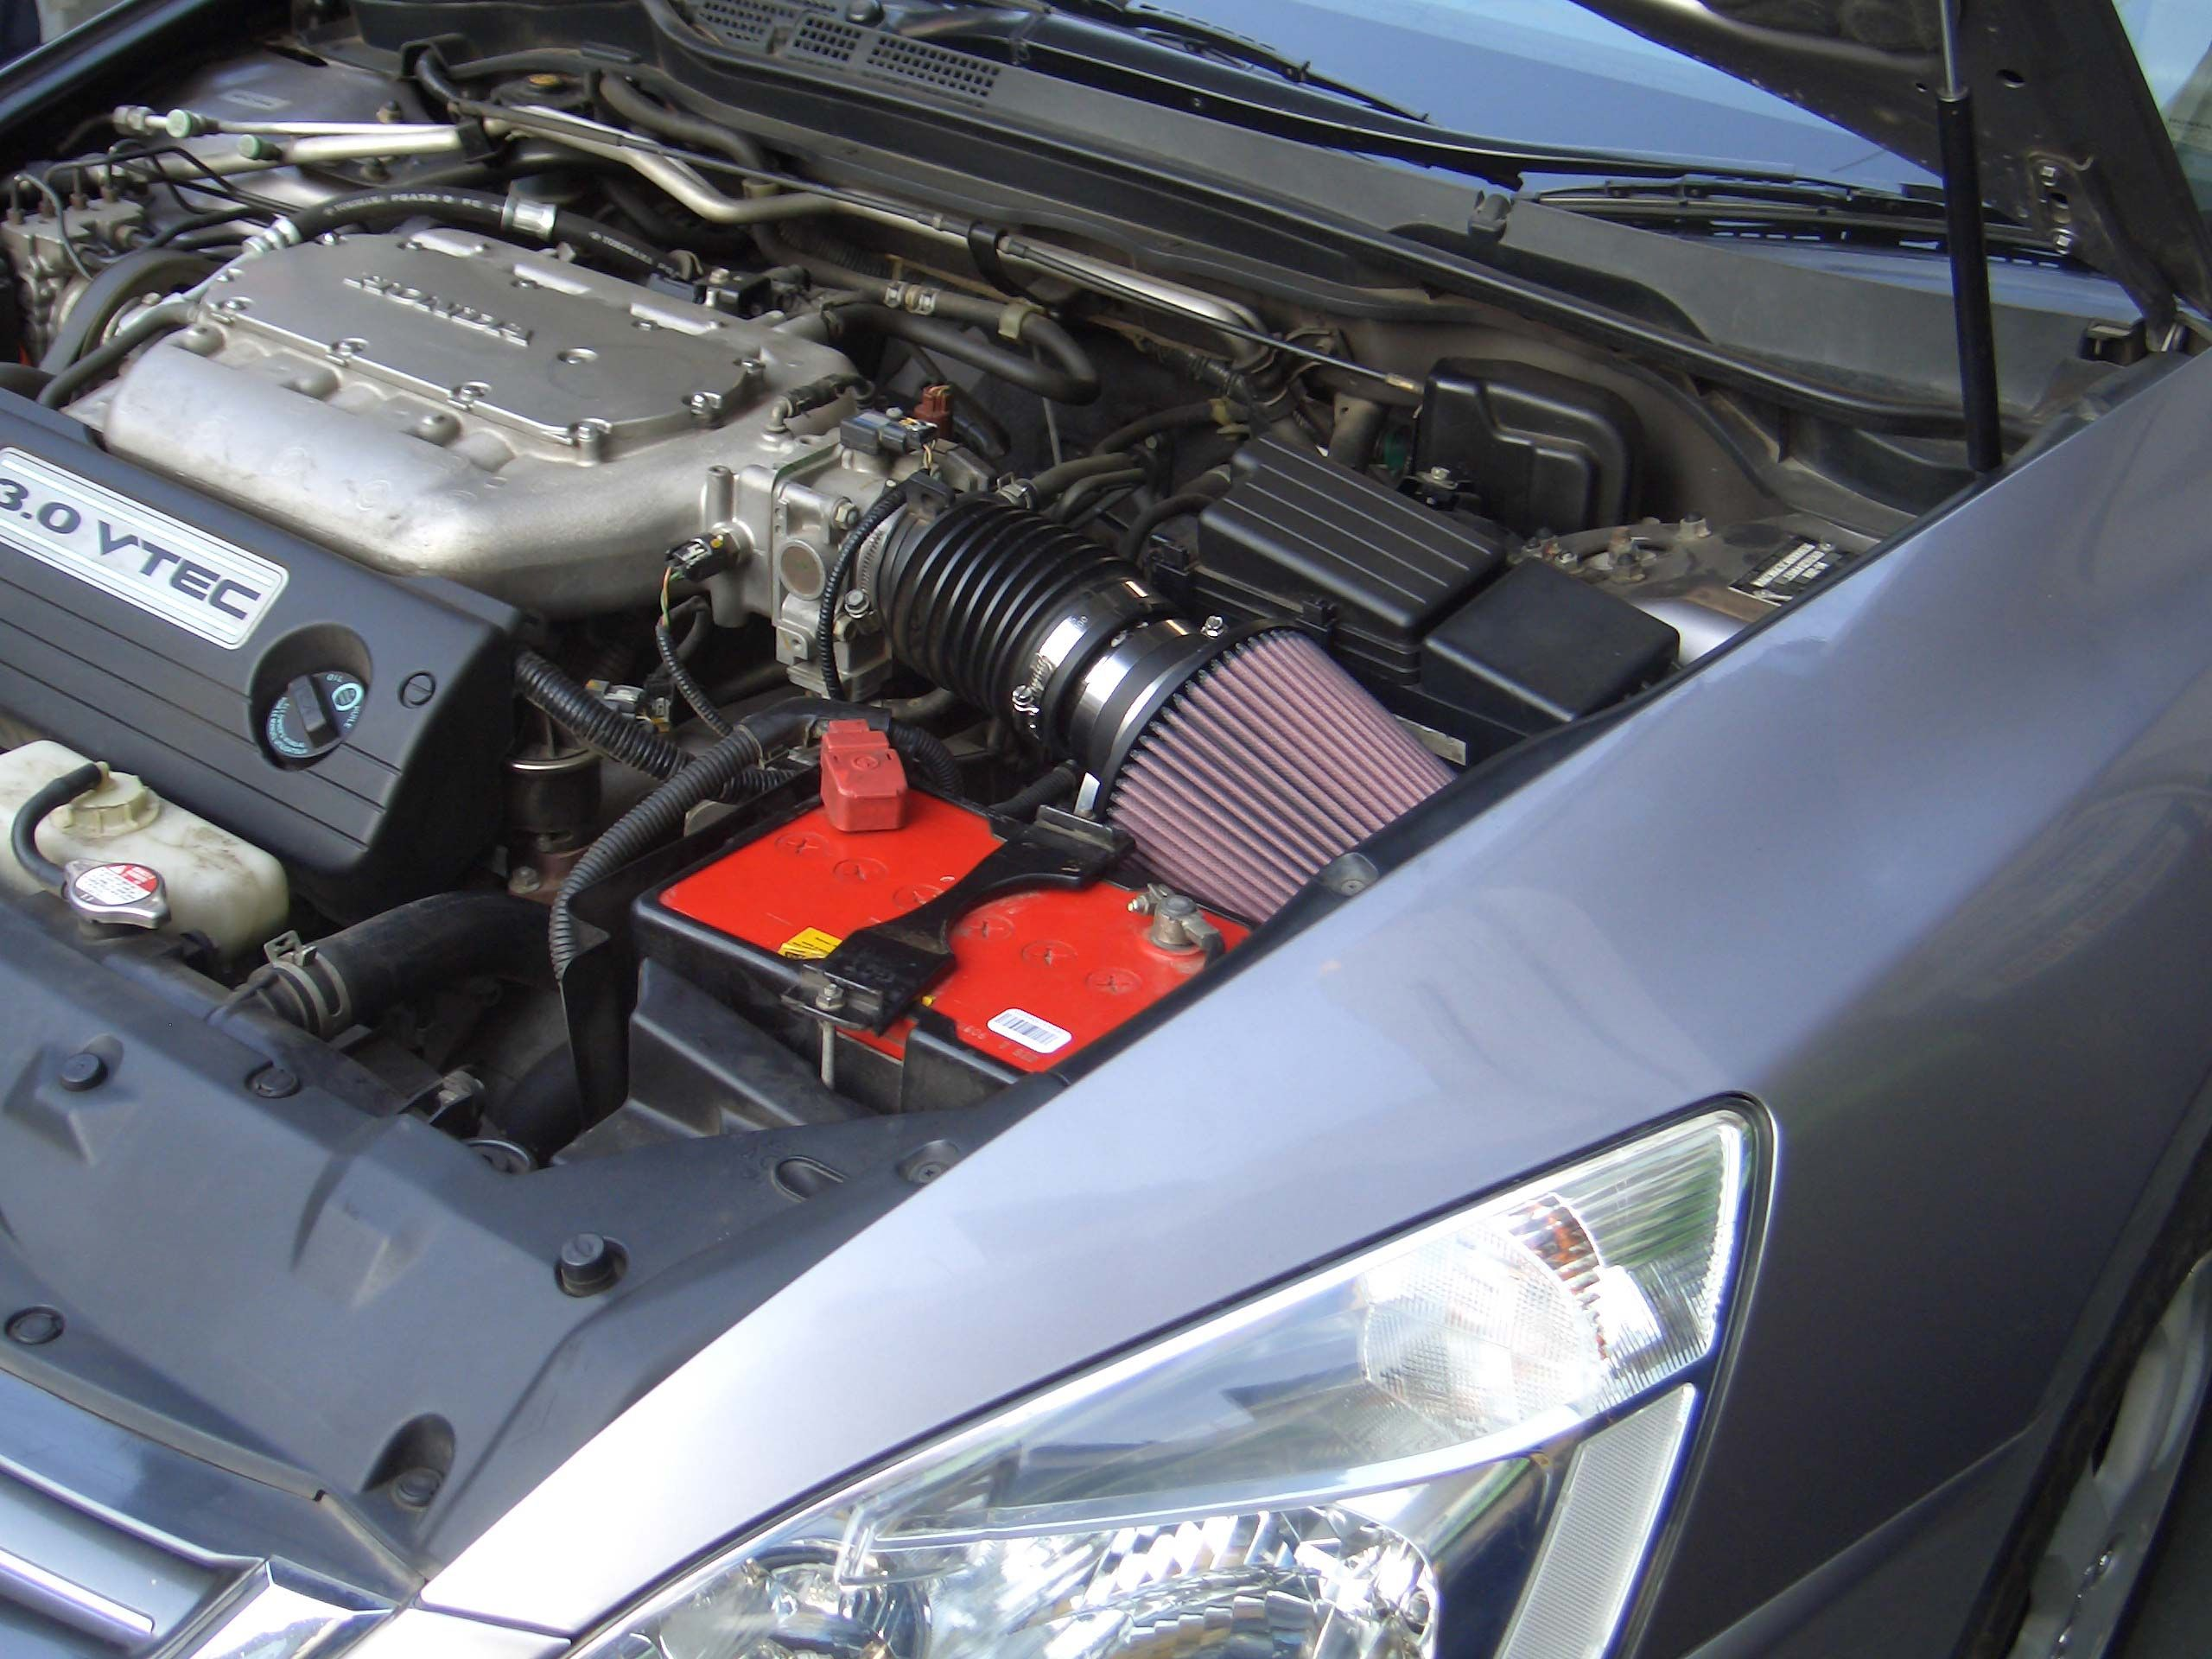 Shop With Confidence In Performancezoneindia Com For Auto Car Performance Parts At Market Leading Price Performance Auto Parts Honda Accord Performance Parts